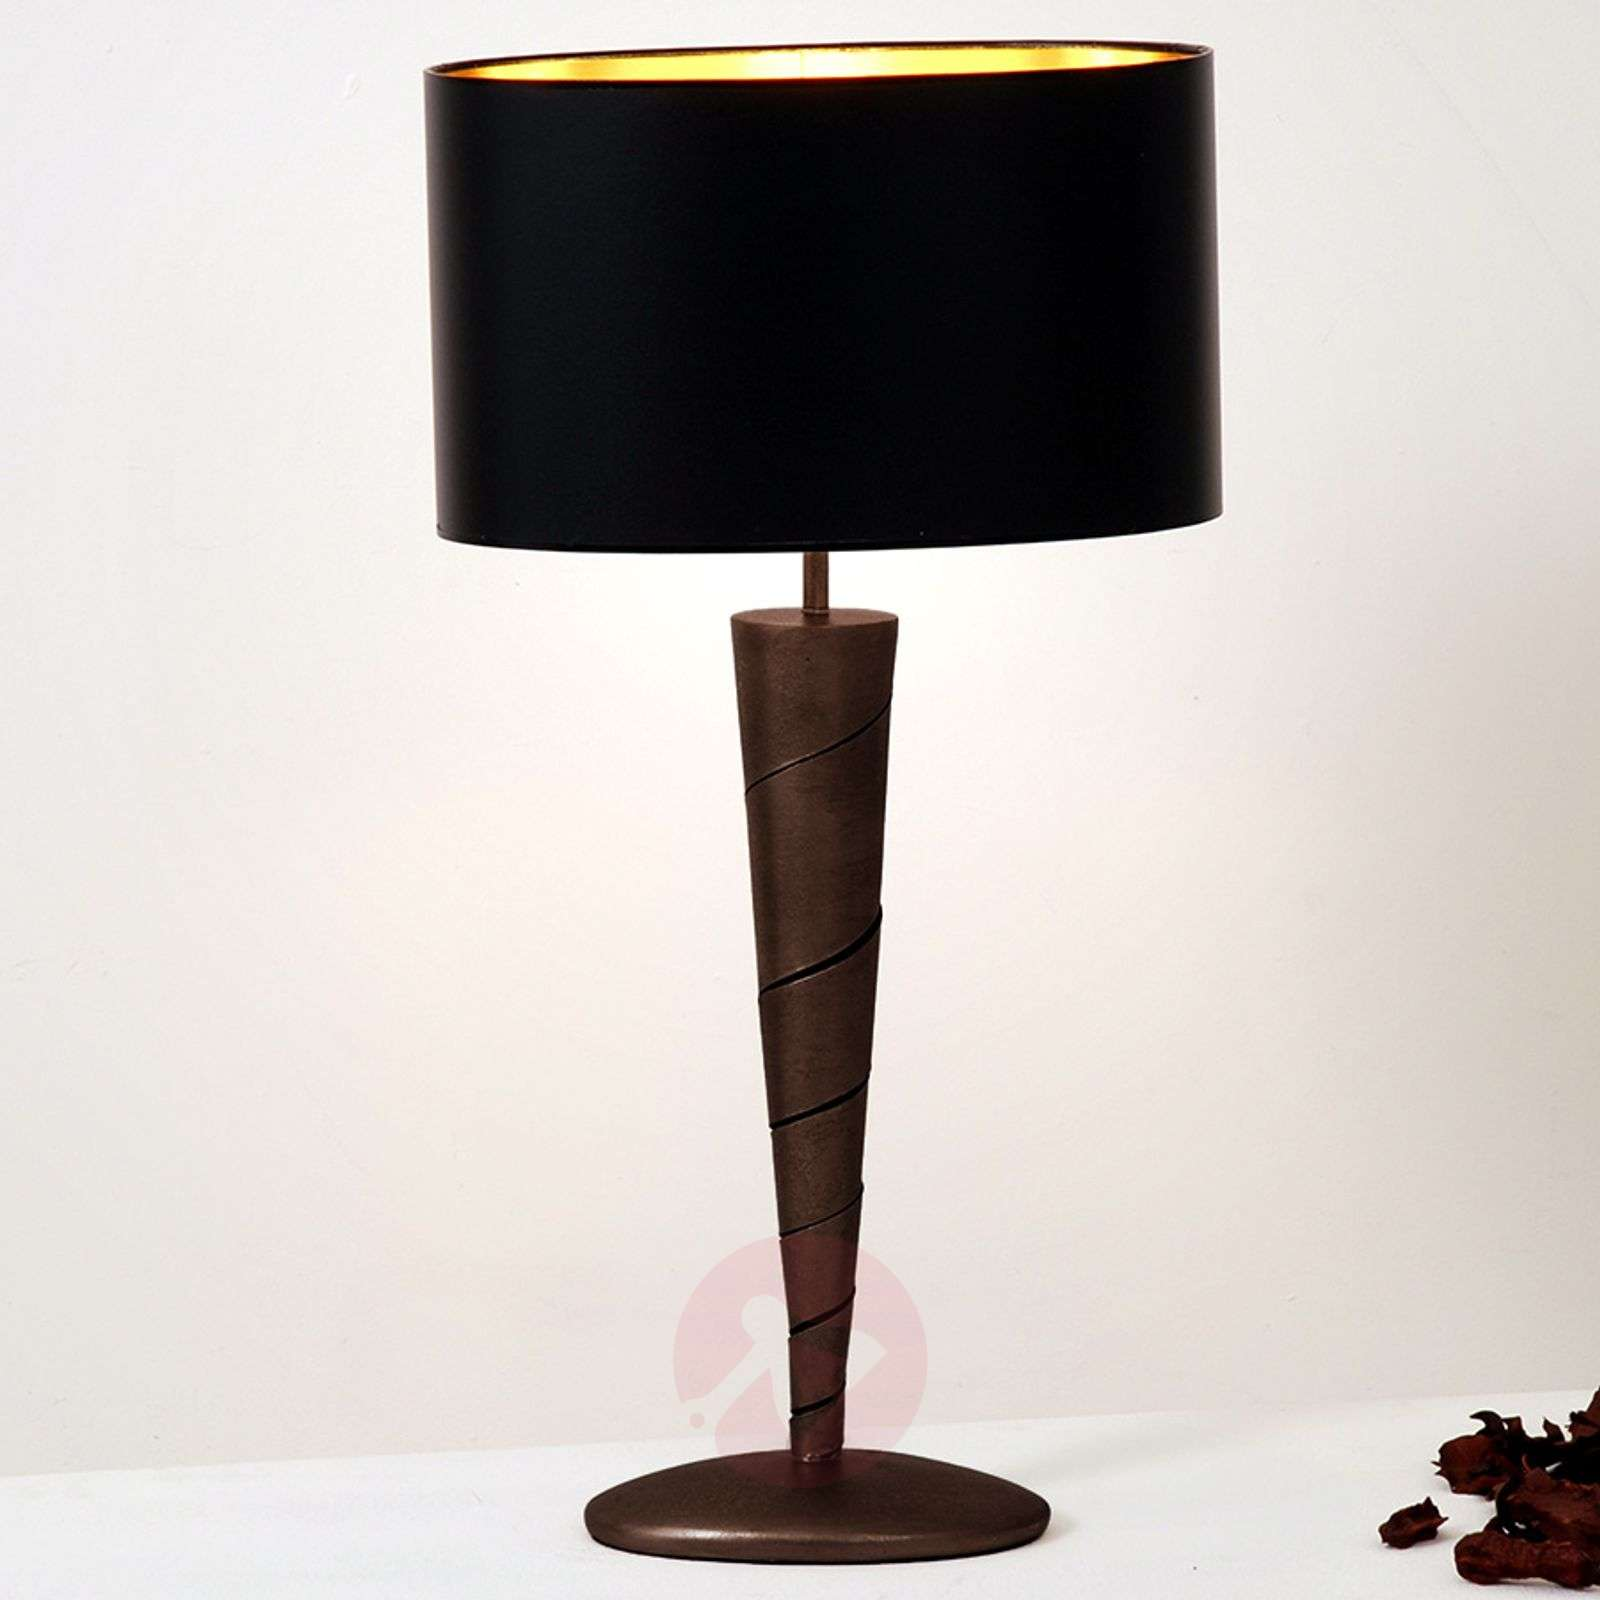 Noble table lamp INNOVAZIONE made of iron-4512034X-01